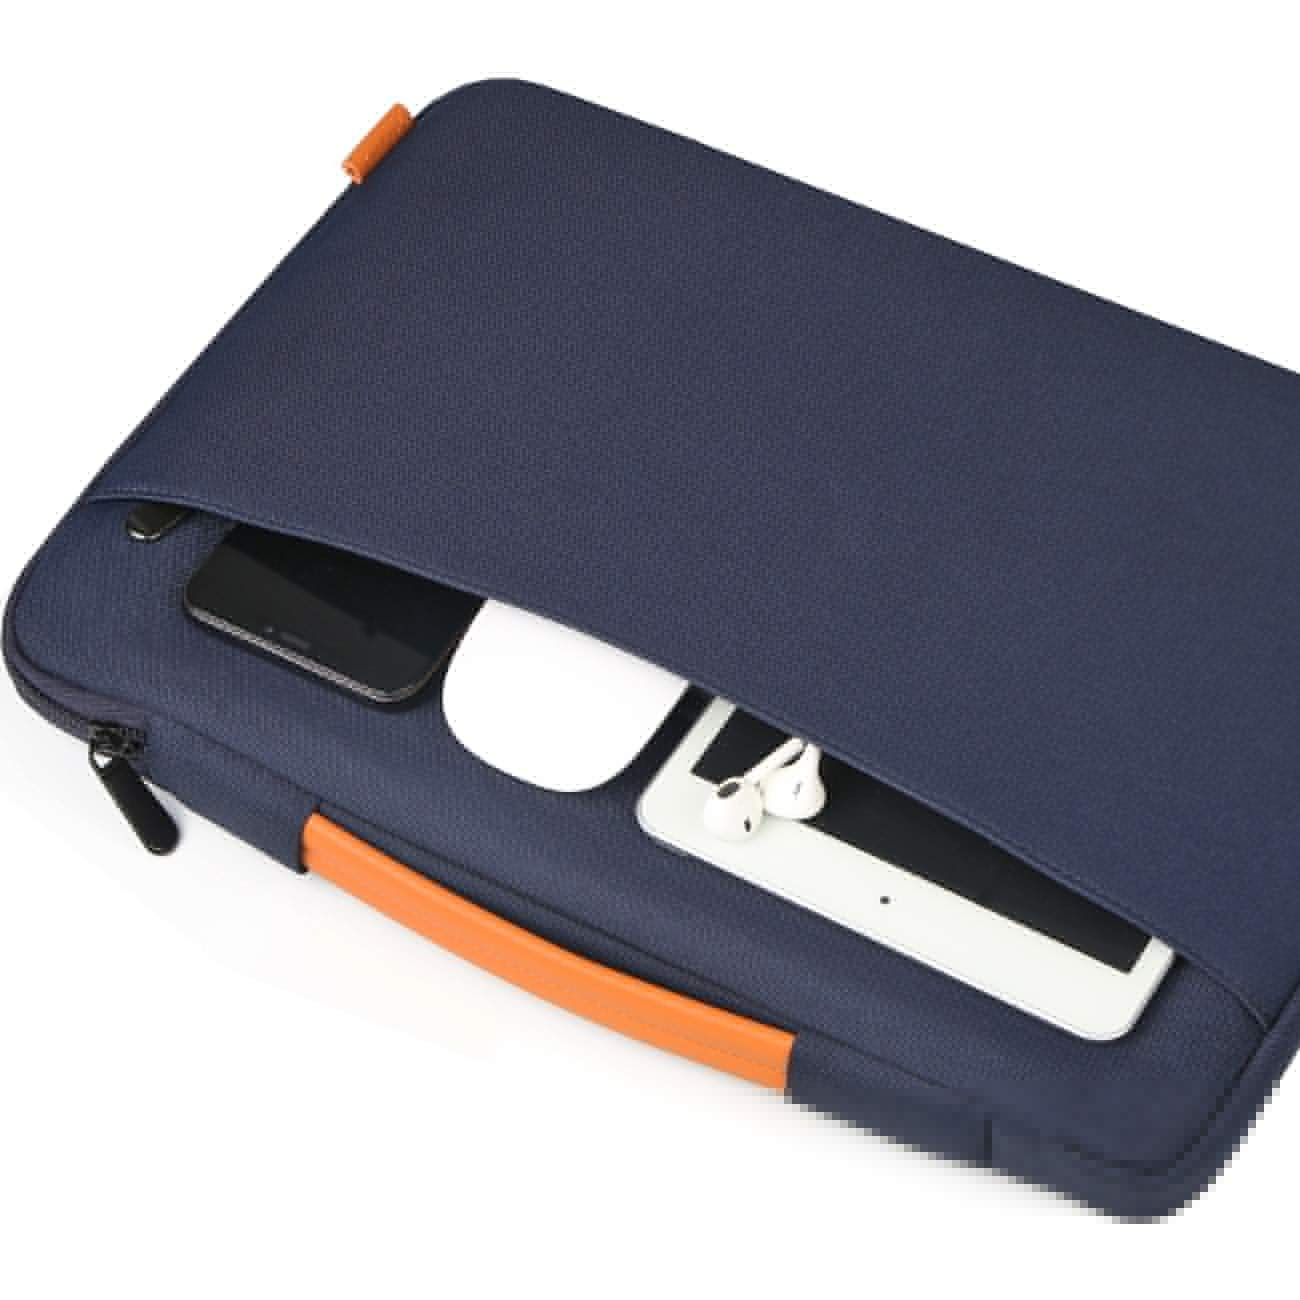 Inateck 13-13.3 Inch MacBook Air/MacBook Pro(Retina) Laptop Sleeve Case LB1302, Blue